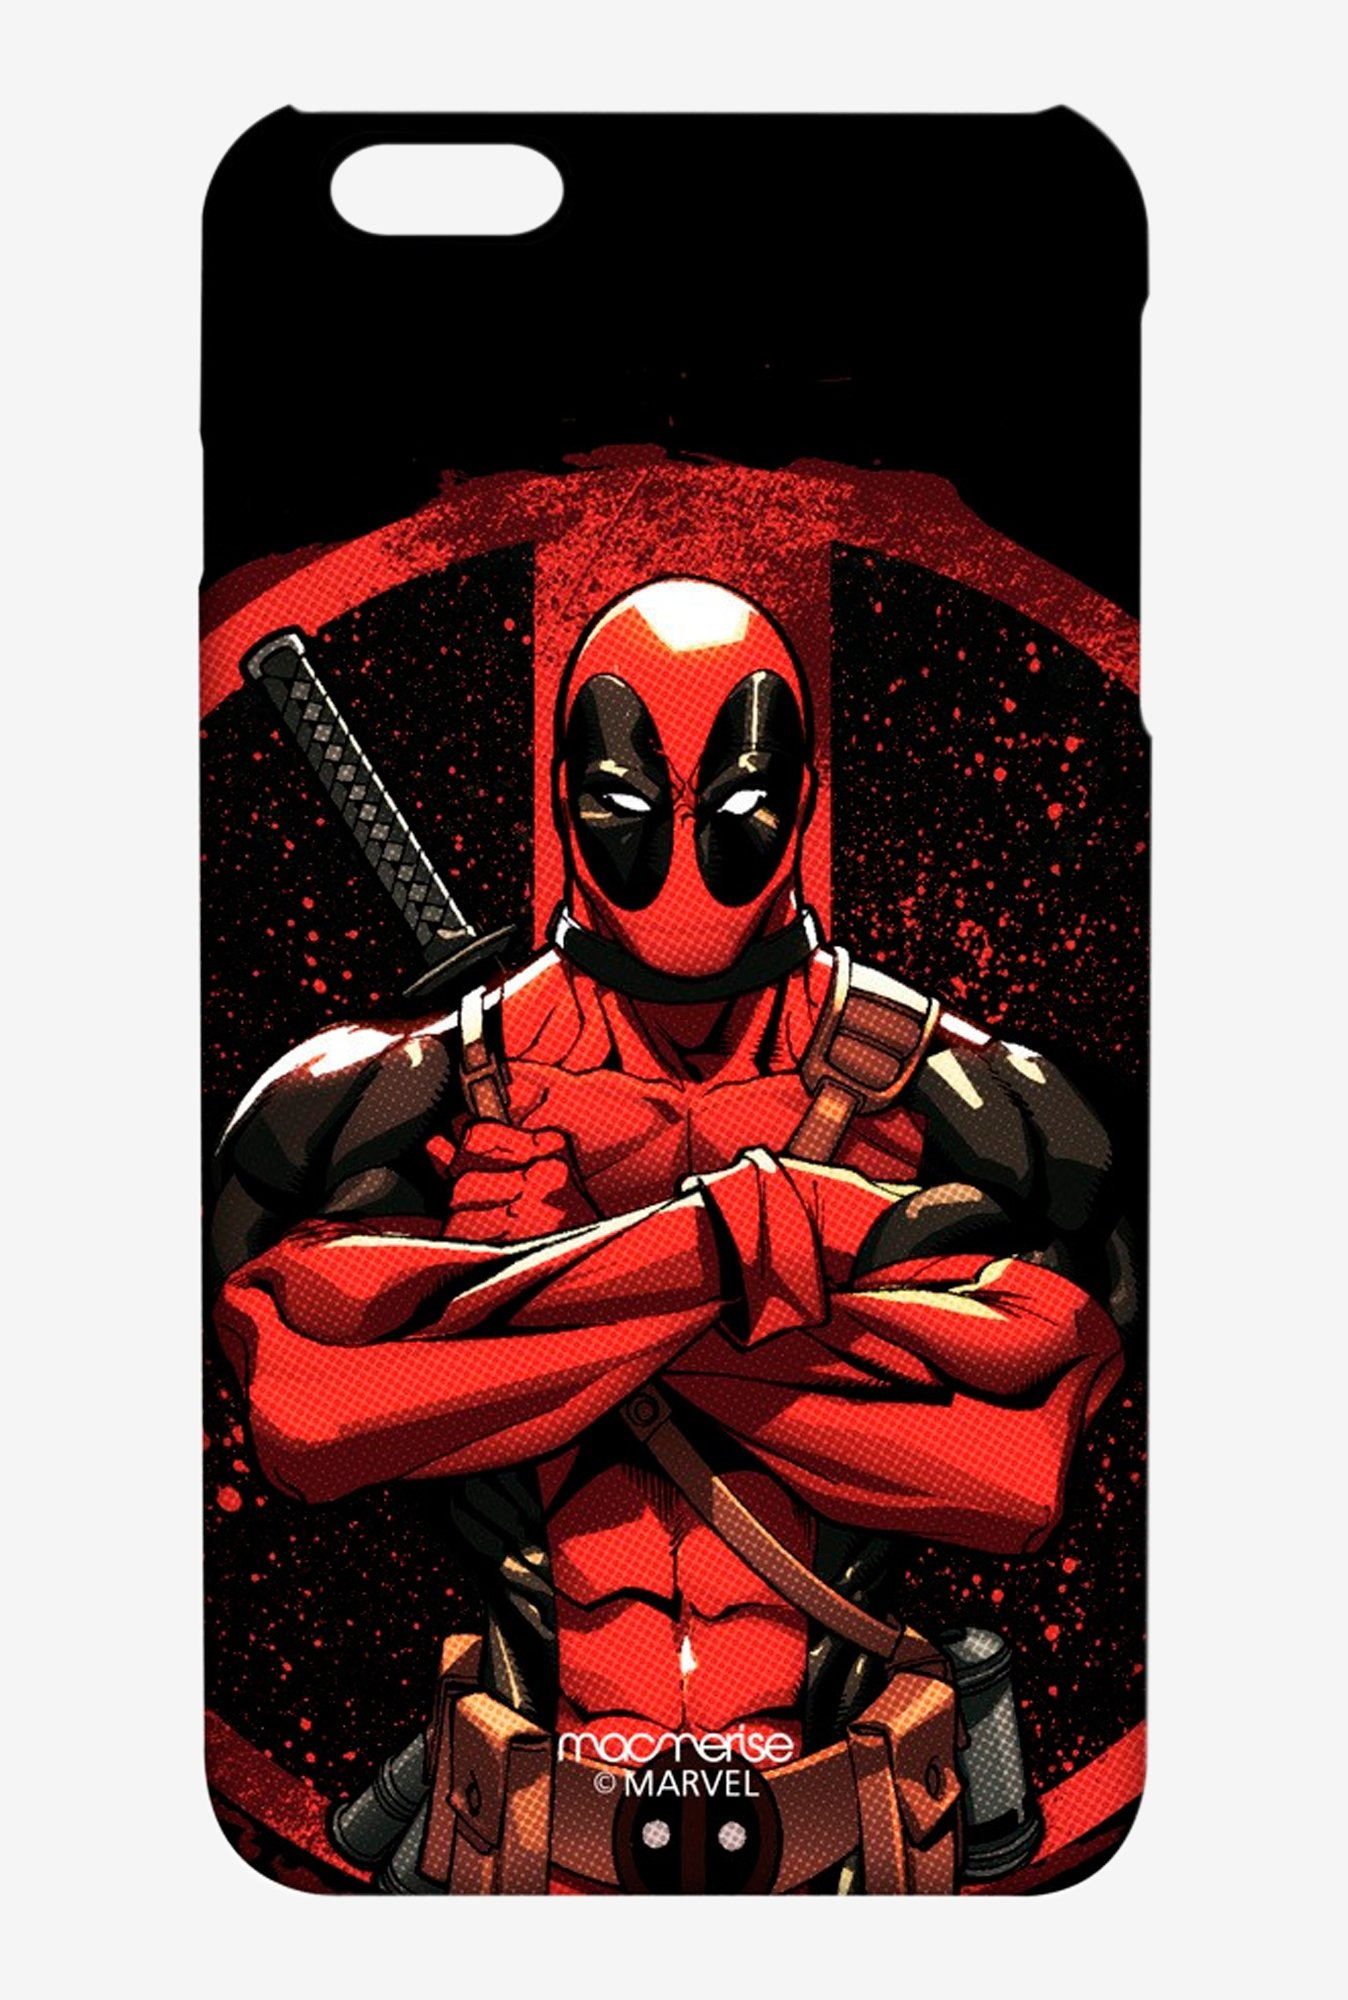 Macmerise Deadpool Stance Pro Case for iPhone 6S Plus